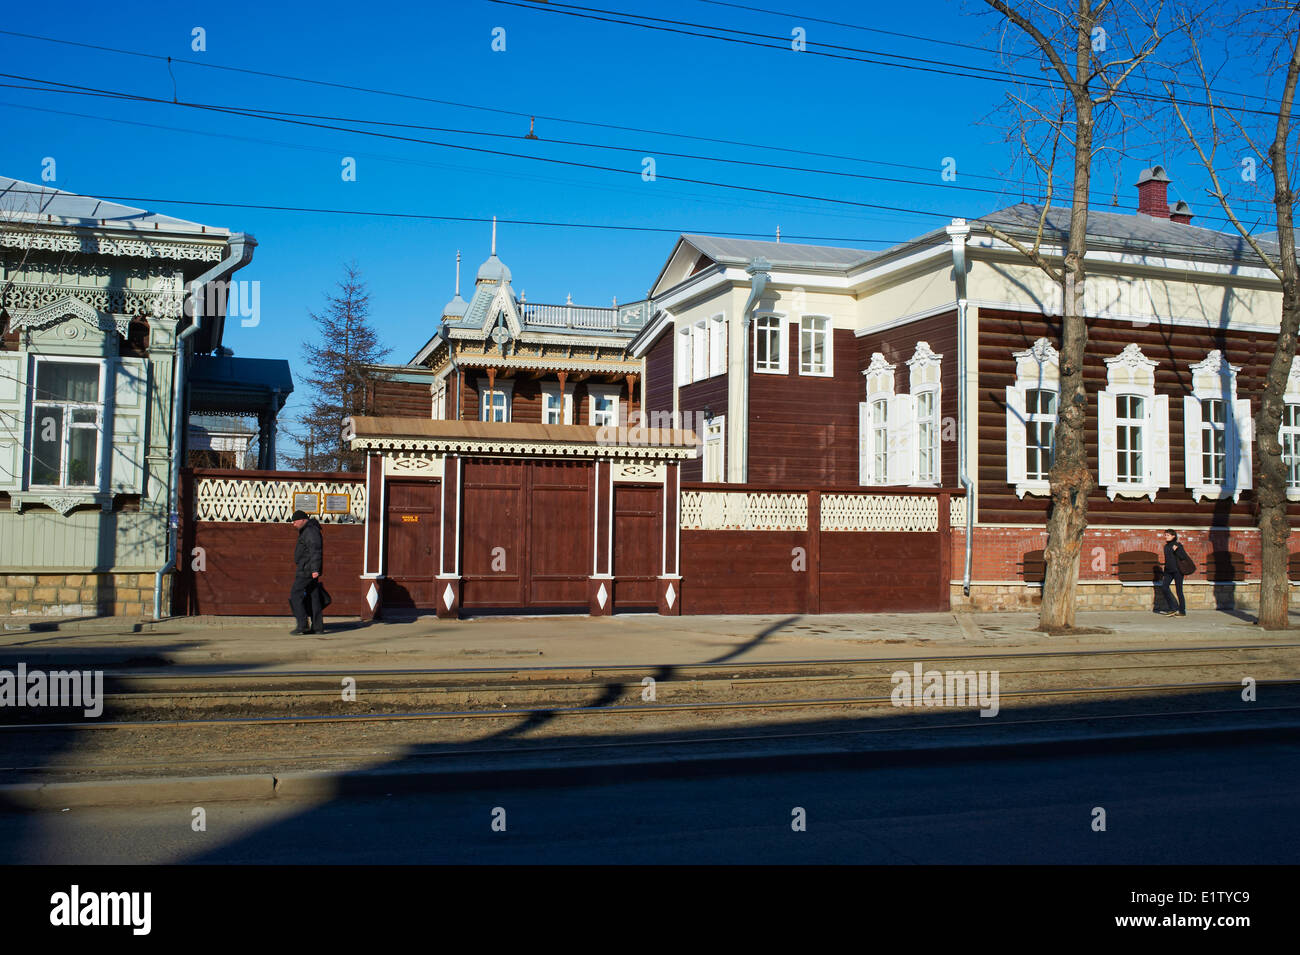 Holzarchitektur, The House of Europe, Irkutsk, Sibirien, Russland Stockbild